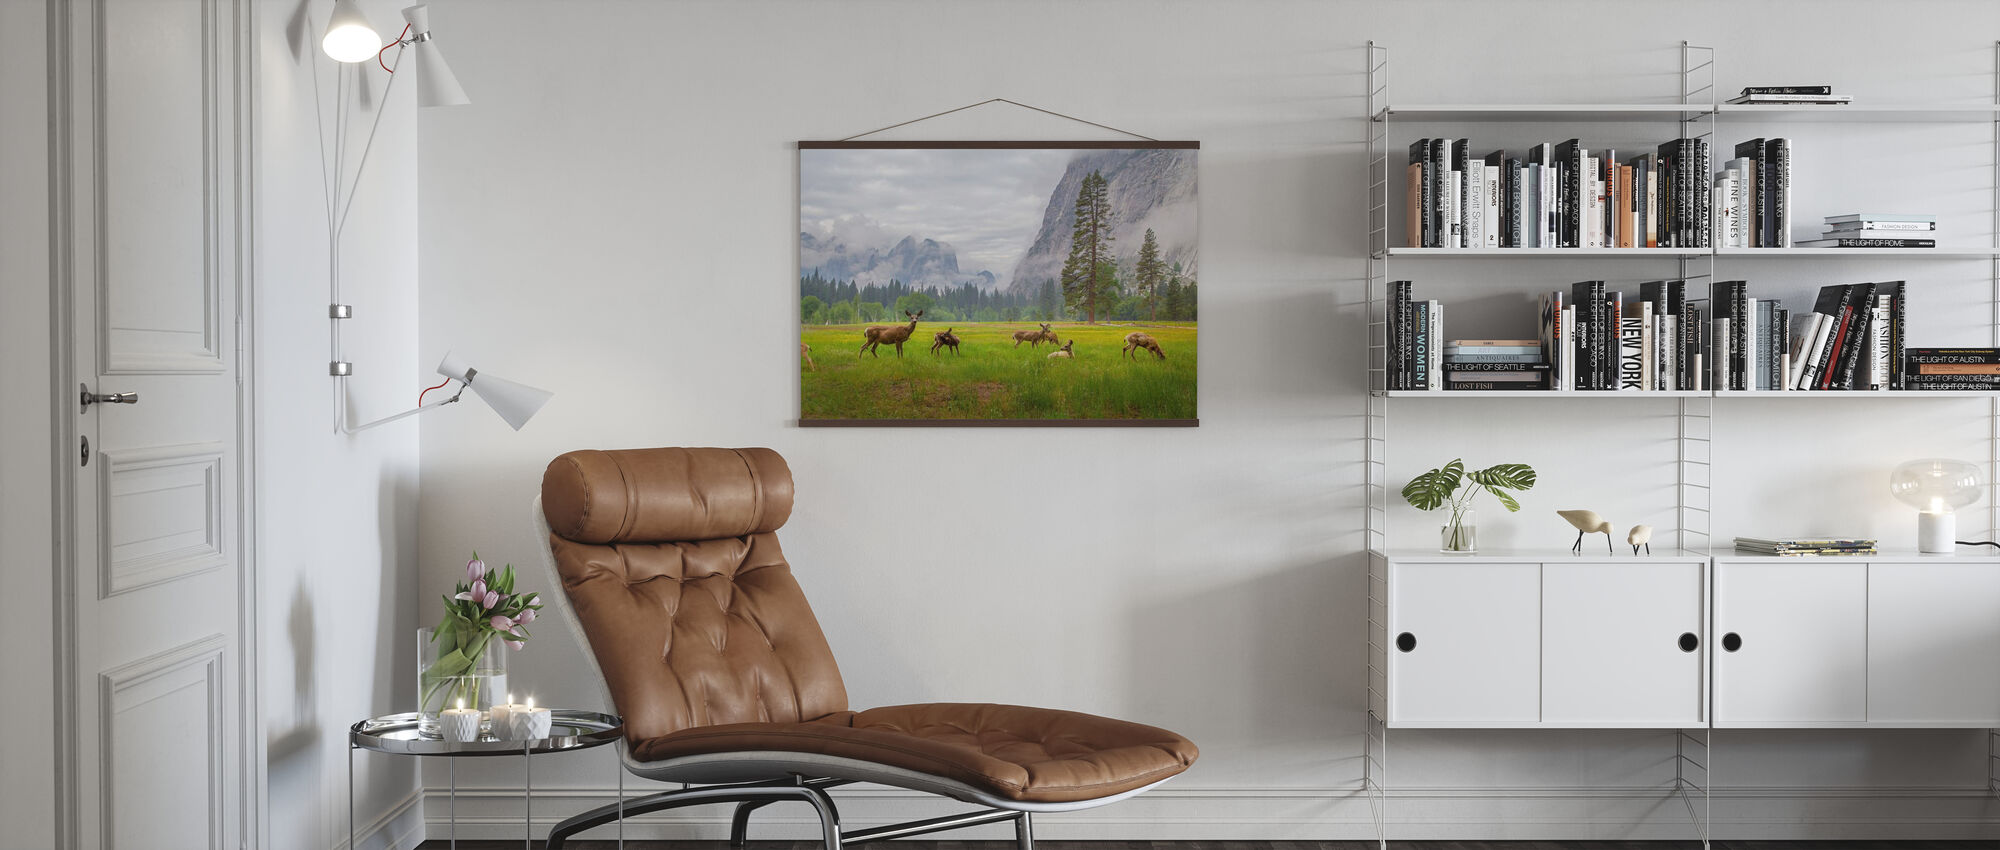 A Feeling of Ancient Time - Poster - Living Room